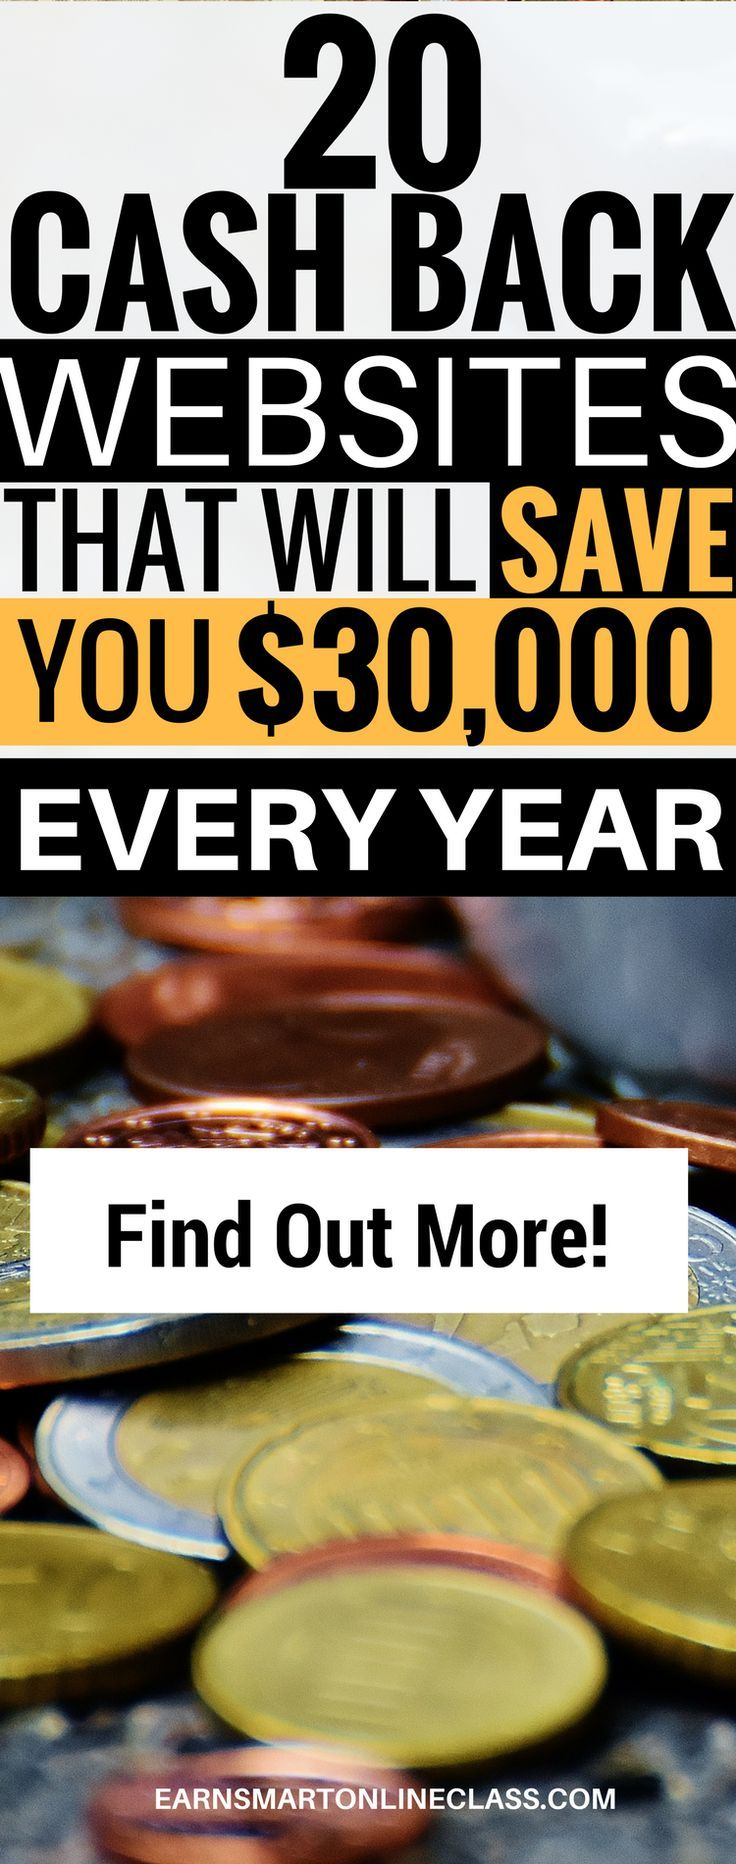 Do you want to save money while doing grocery shopping? Now you can! These 20 cash back websites will you money this year| get paid to shop at these rebates cash back sites| best cash back sites| save money shopping online| best shopping apps| shopping with ebates, topcashback, swagbucks